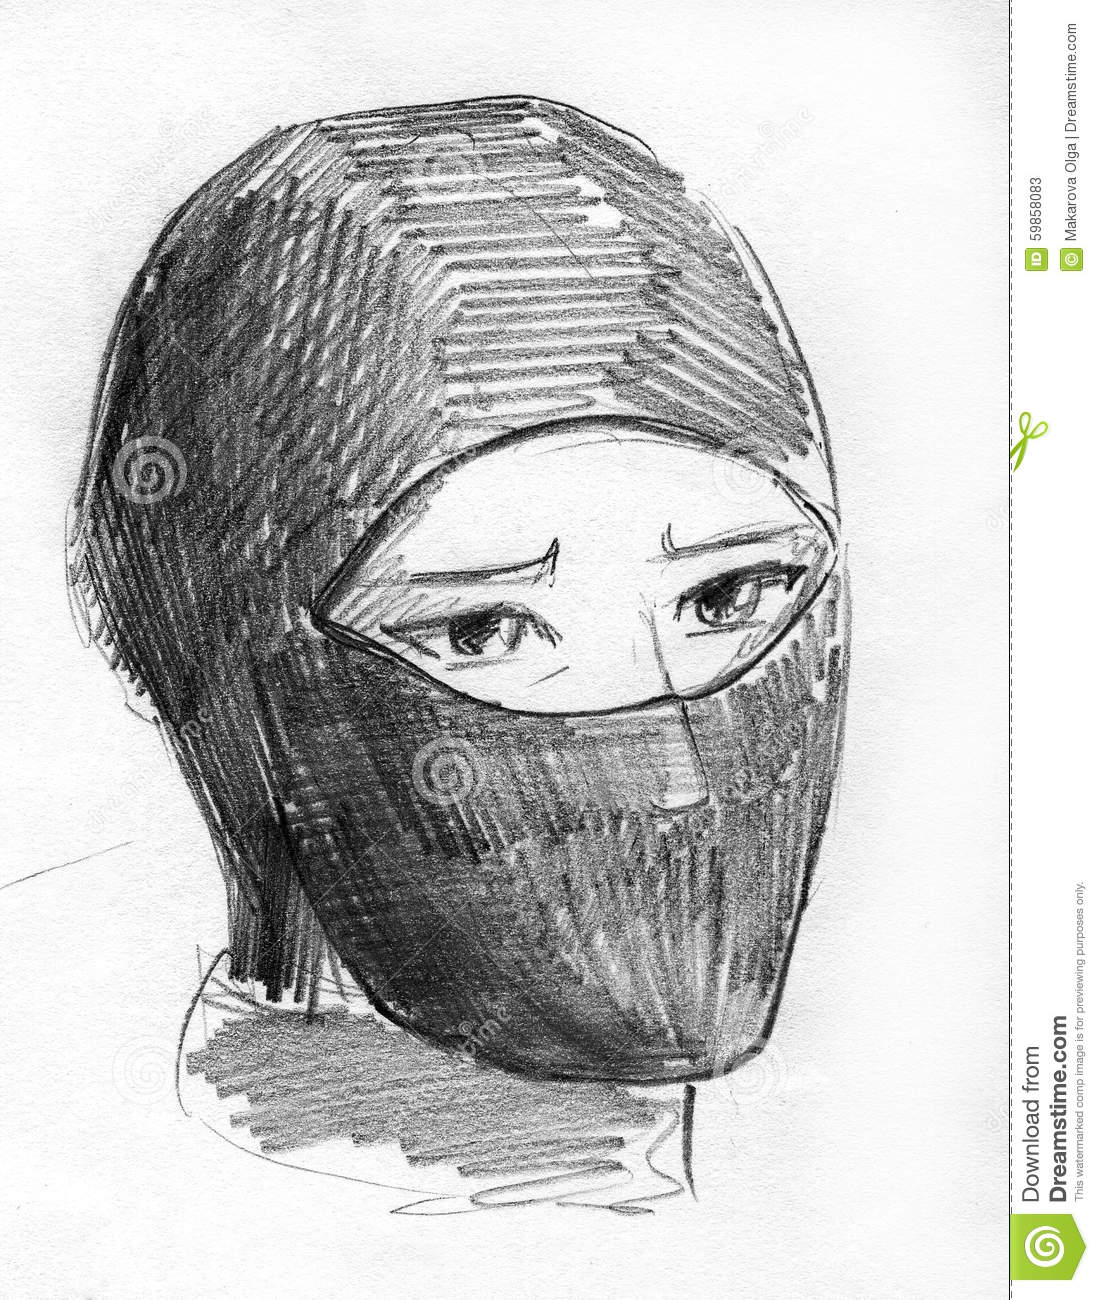 Hand drawn pencil sketch of a person wearing ninja mask